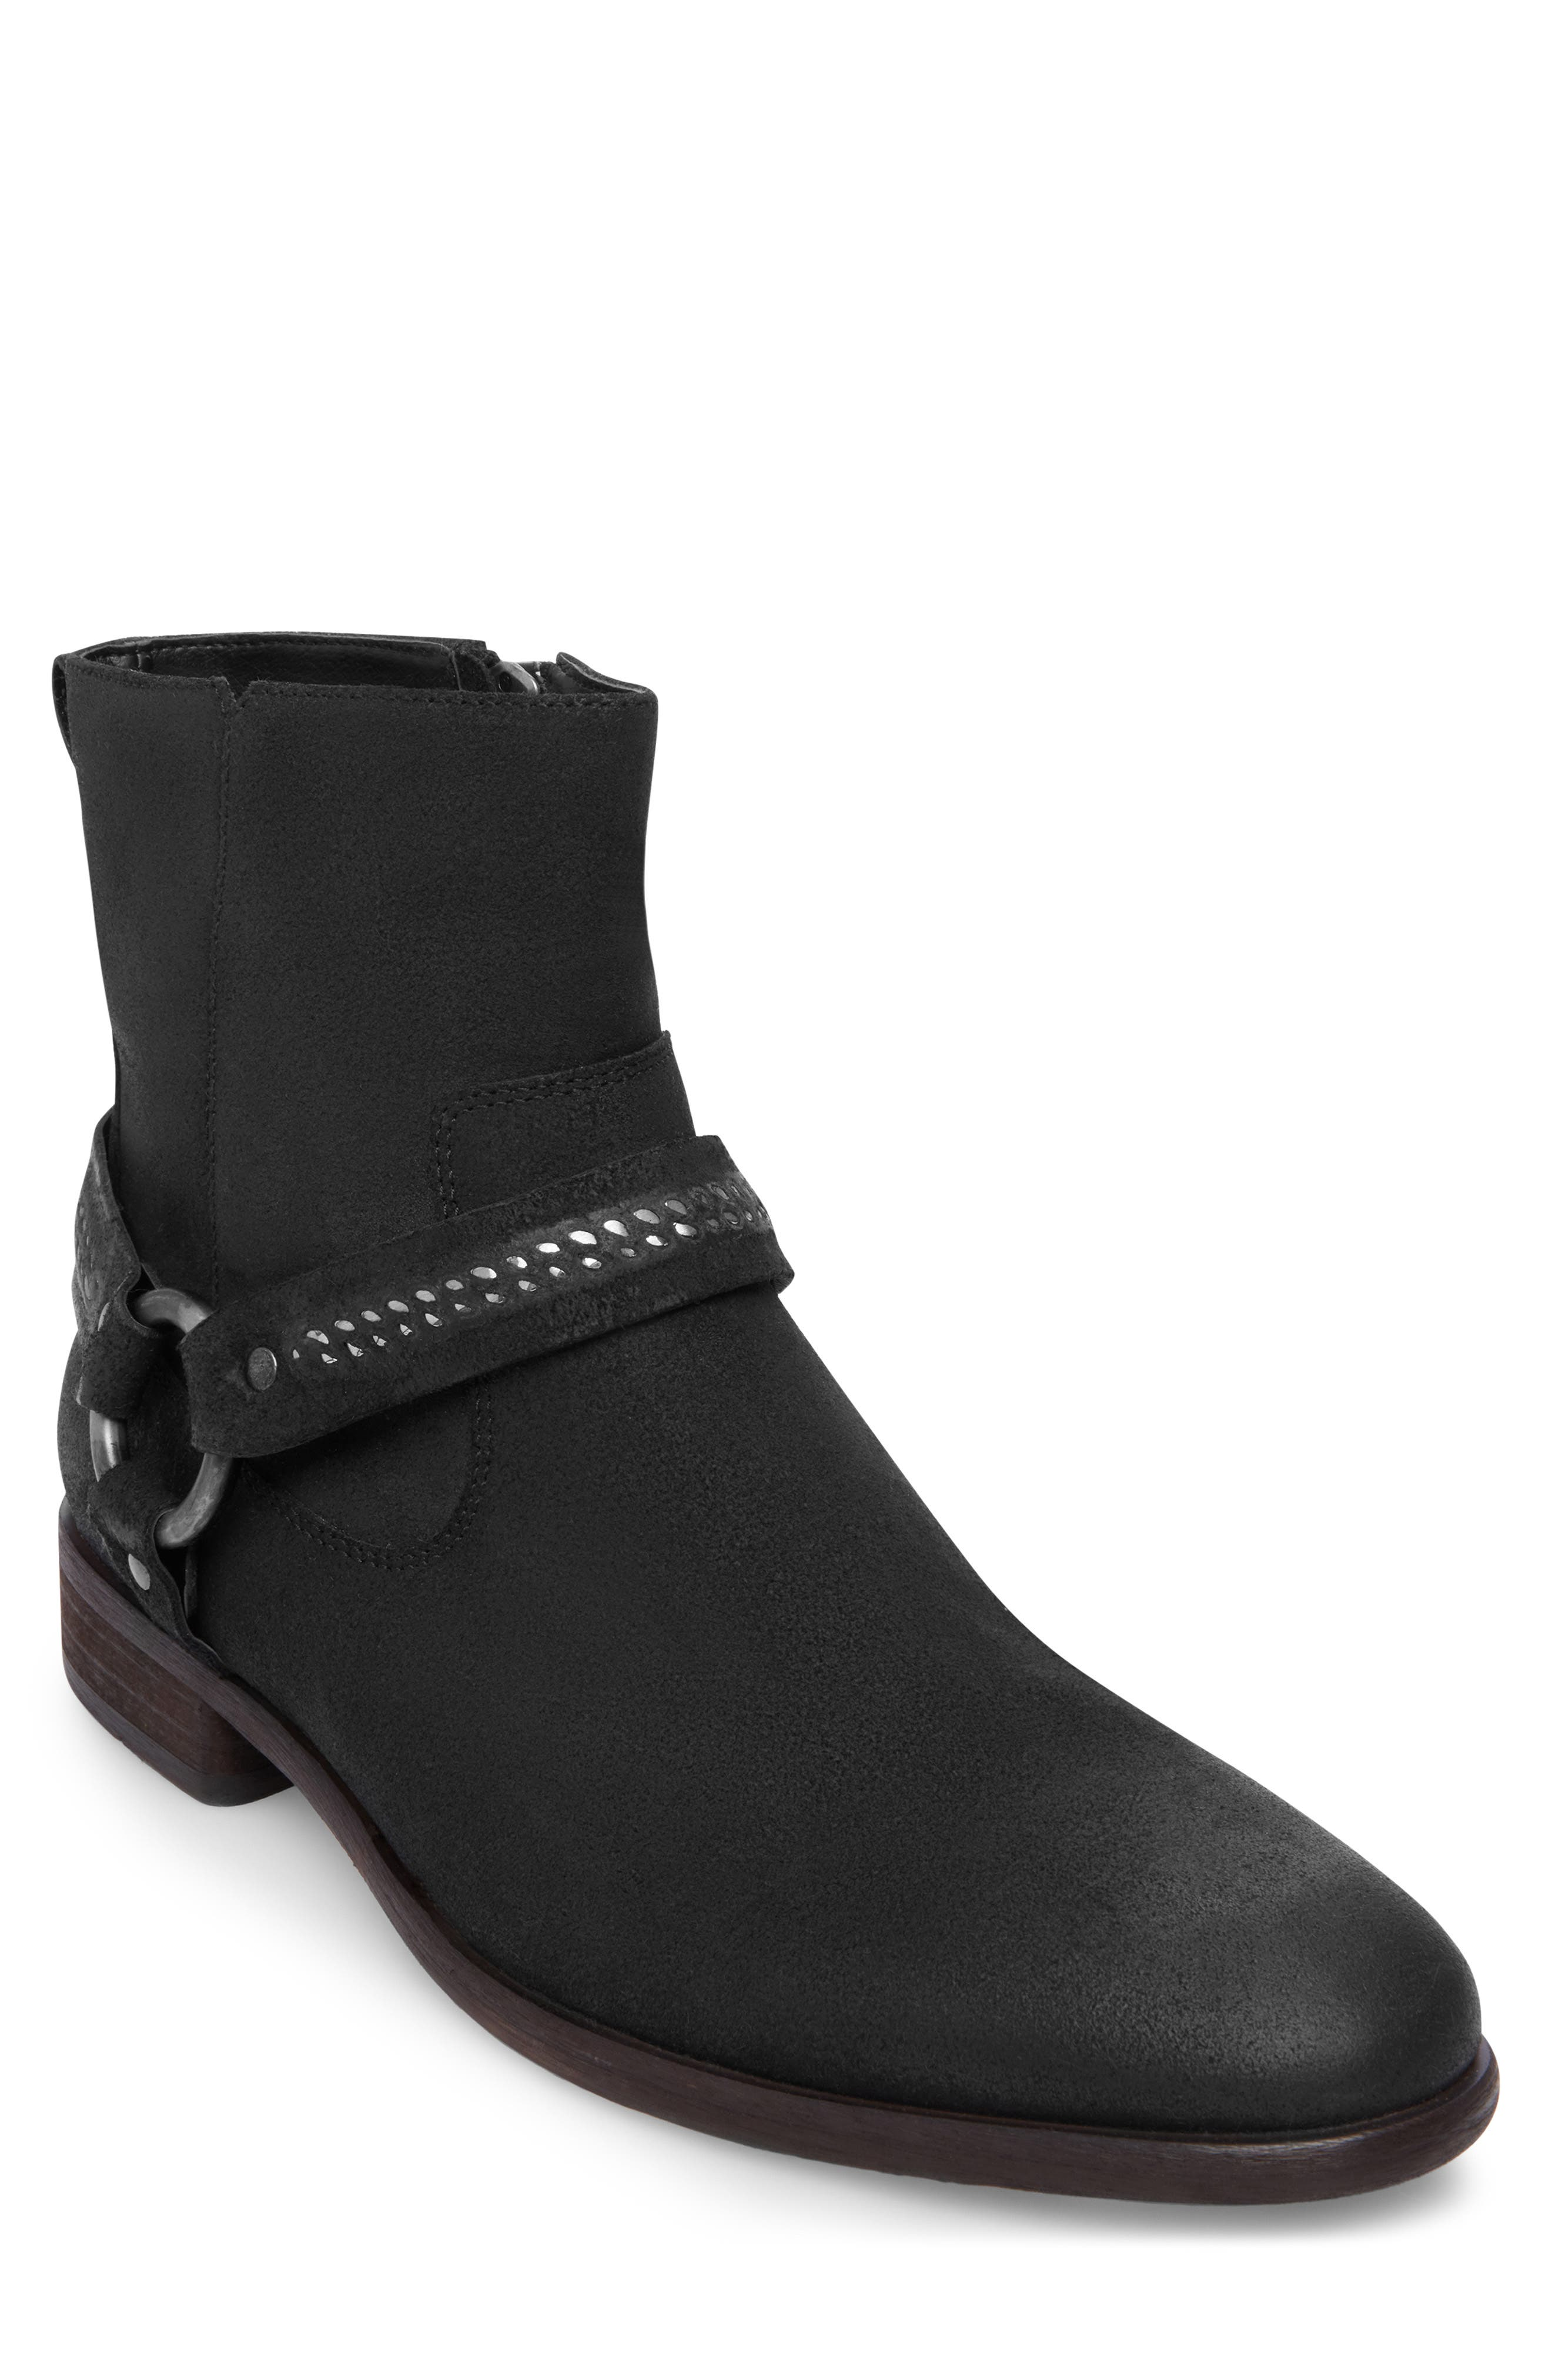 Vancet Engineer Boot,                         Main,                         color, BLACK LEATHER